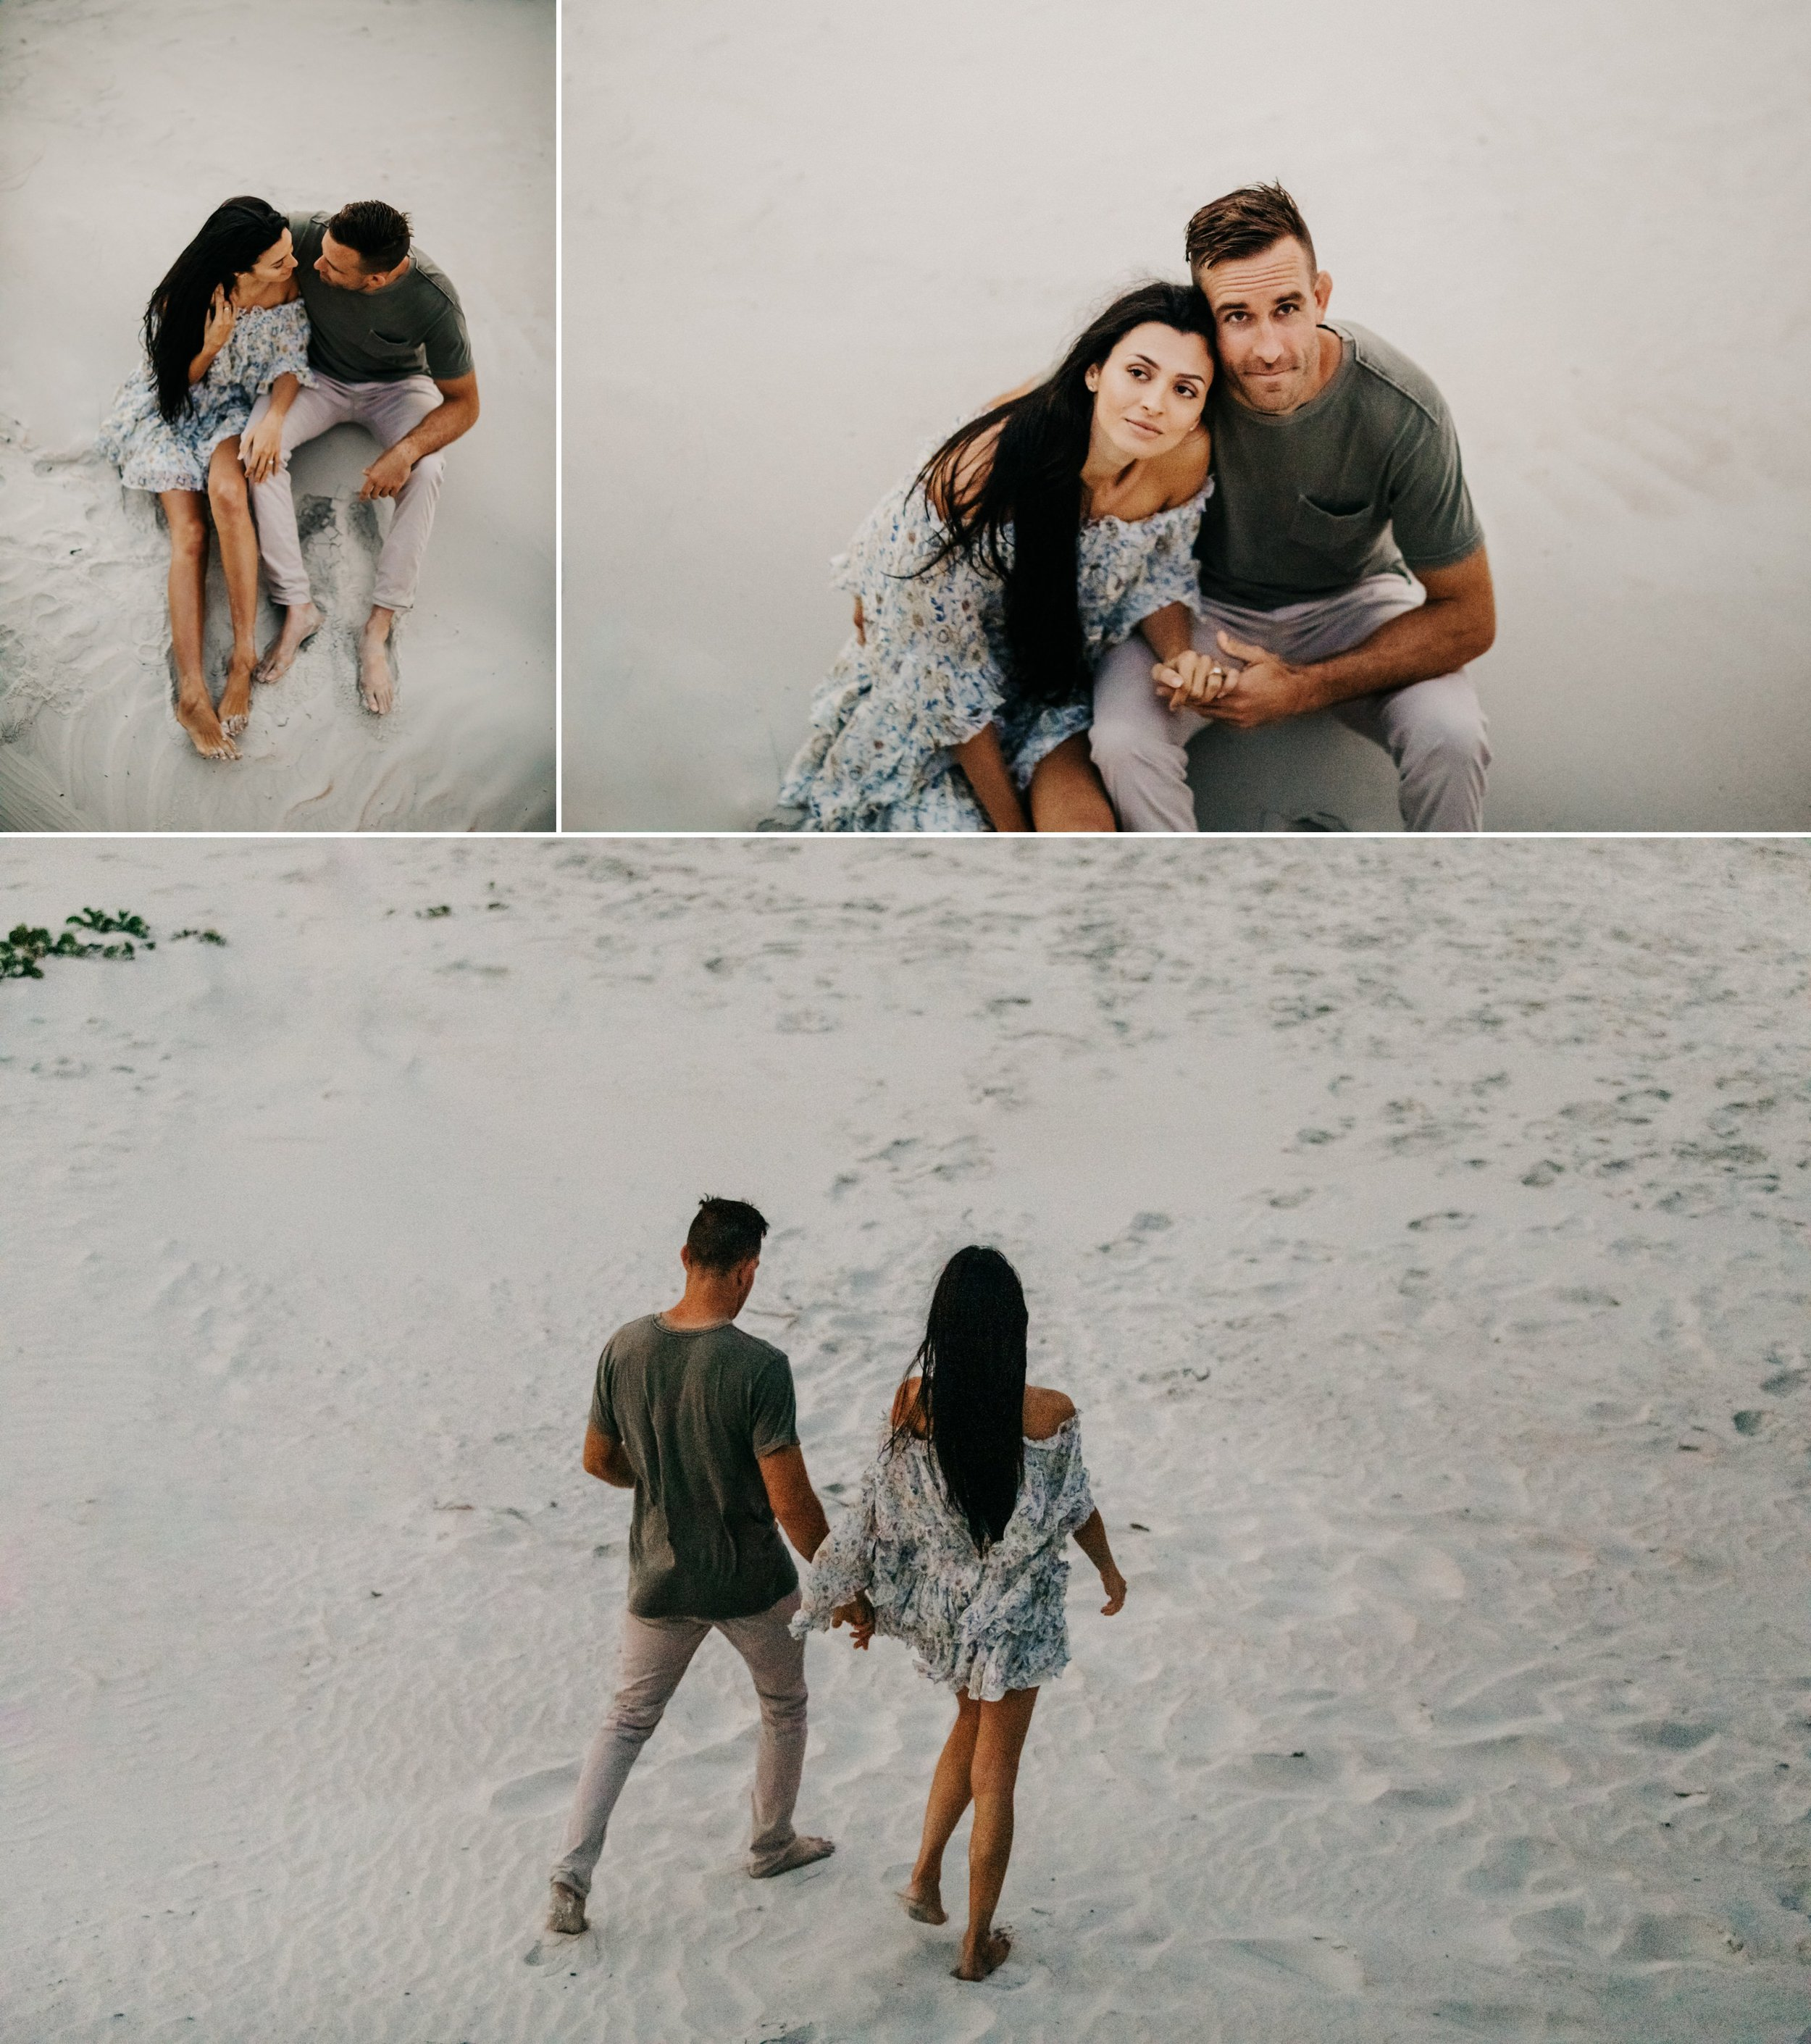 Adventure Brushfire sunset beach engagement- Gabriella + Chad- Shaina DeCiryan photography16.jpg